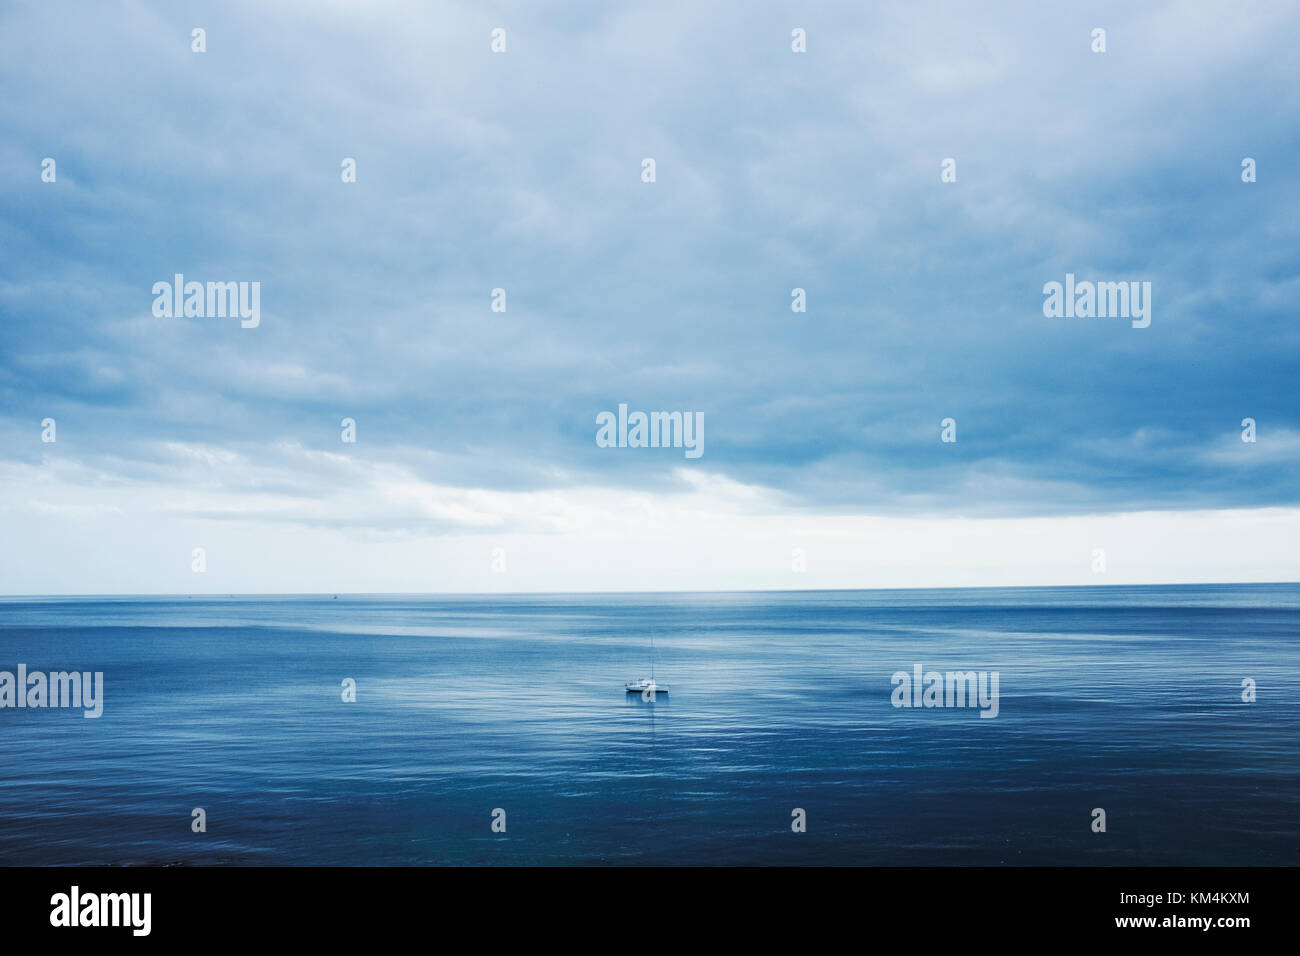 View across a calm sea to the horizon and a cloudy sky. A small yacht, day boat under motor power. - Stock Image